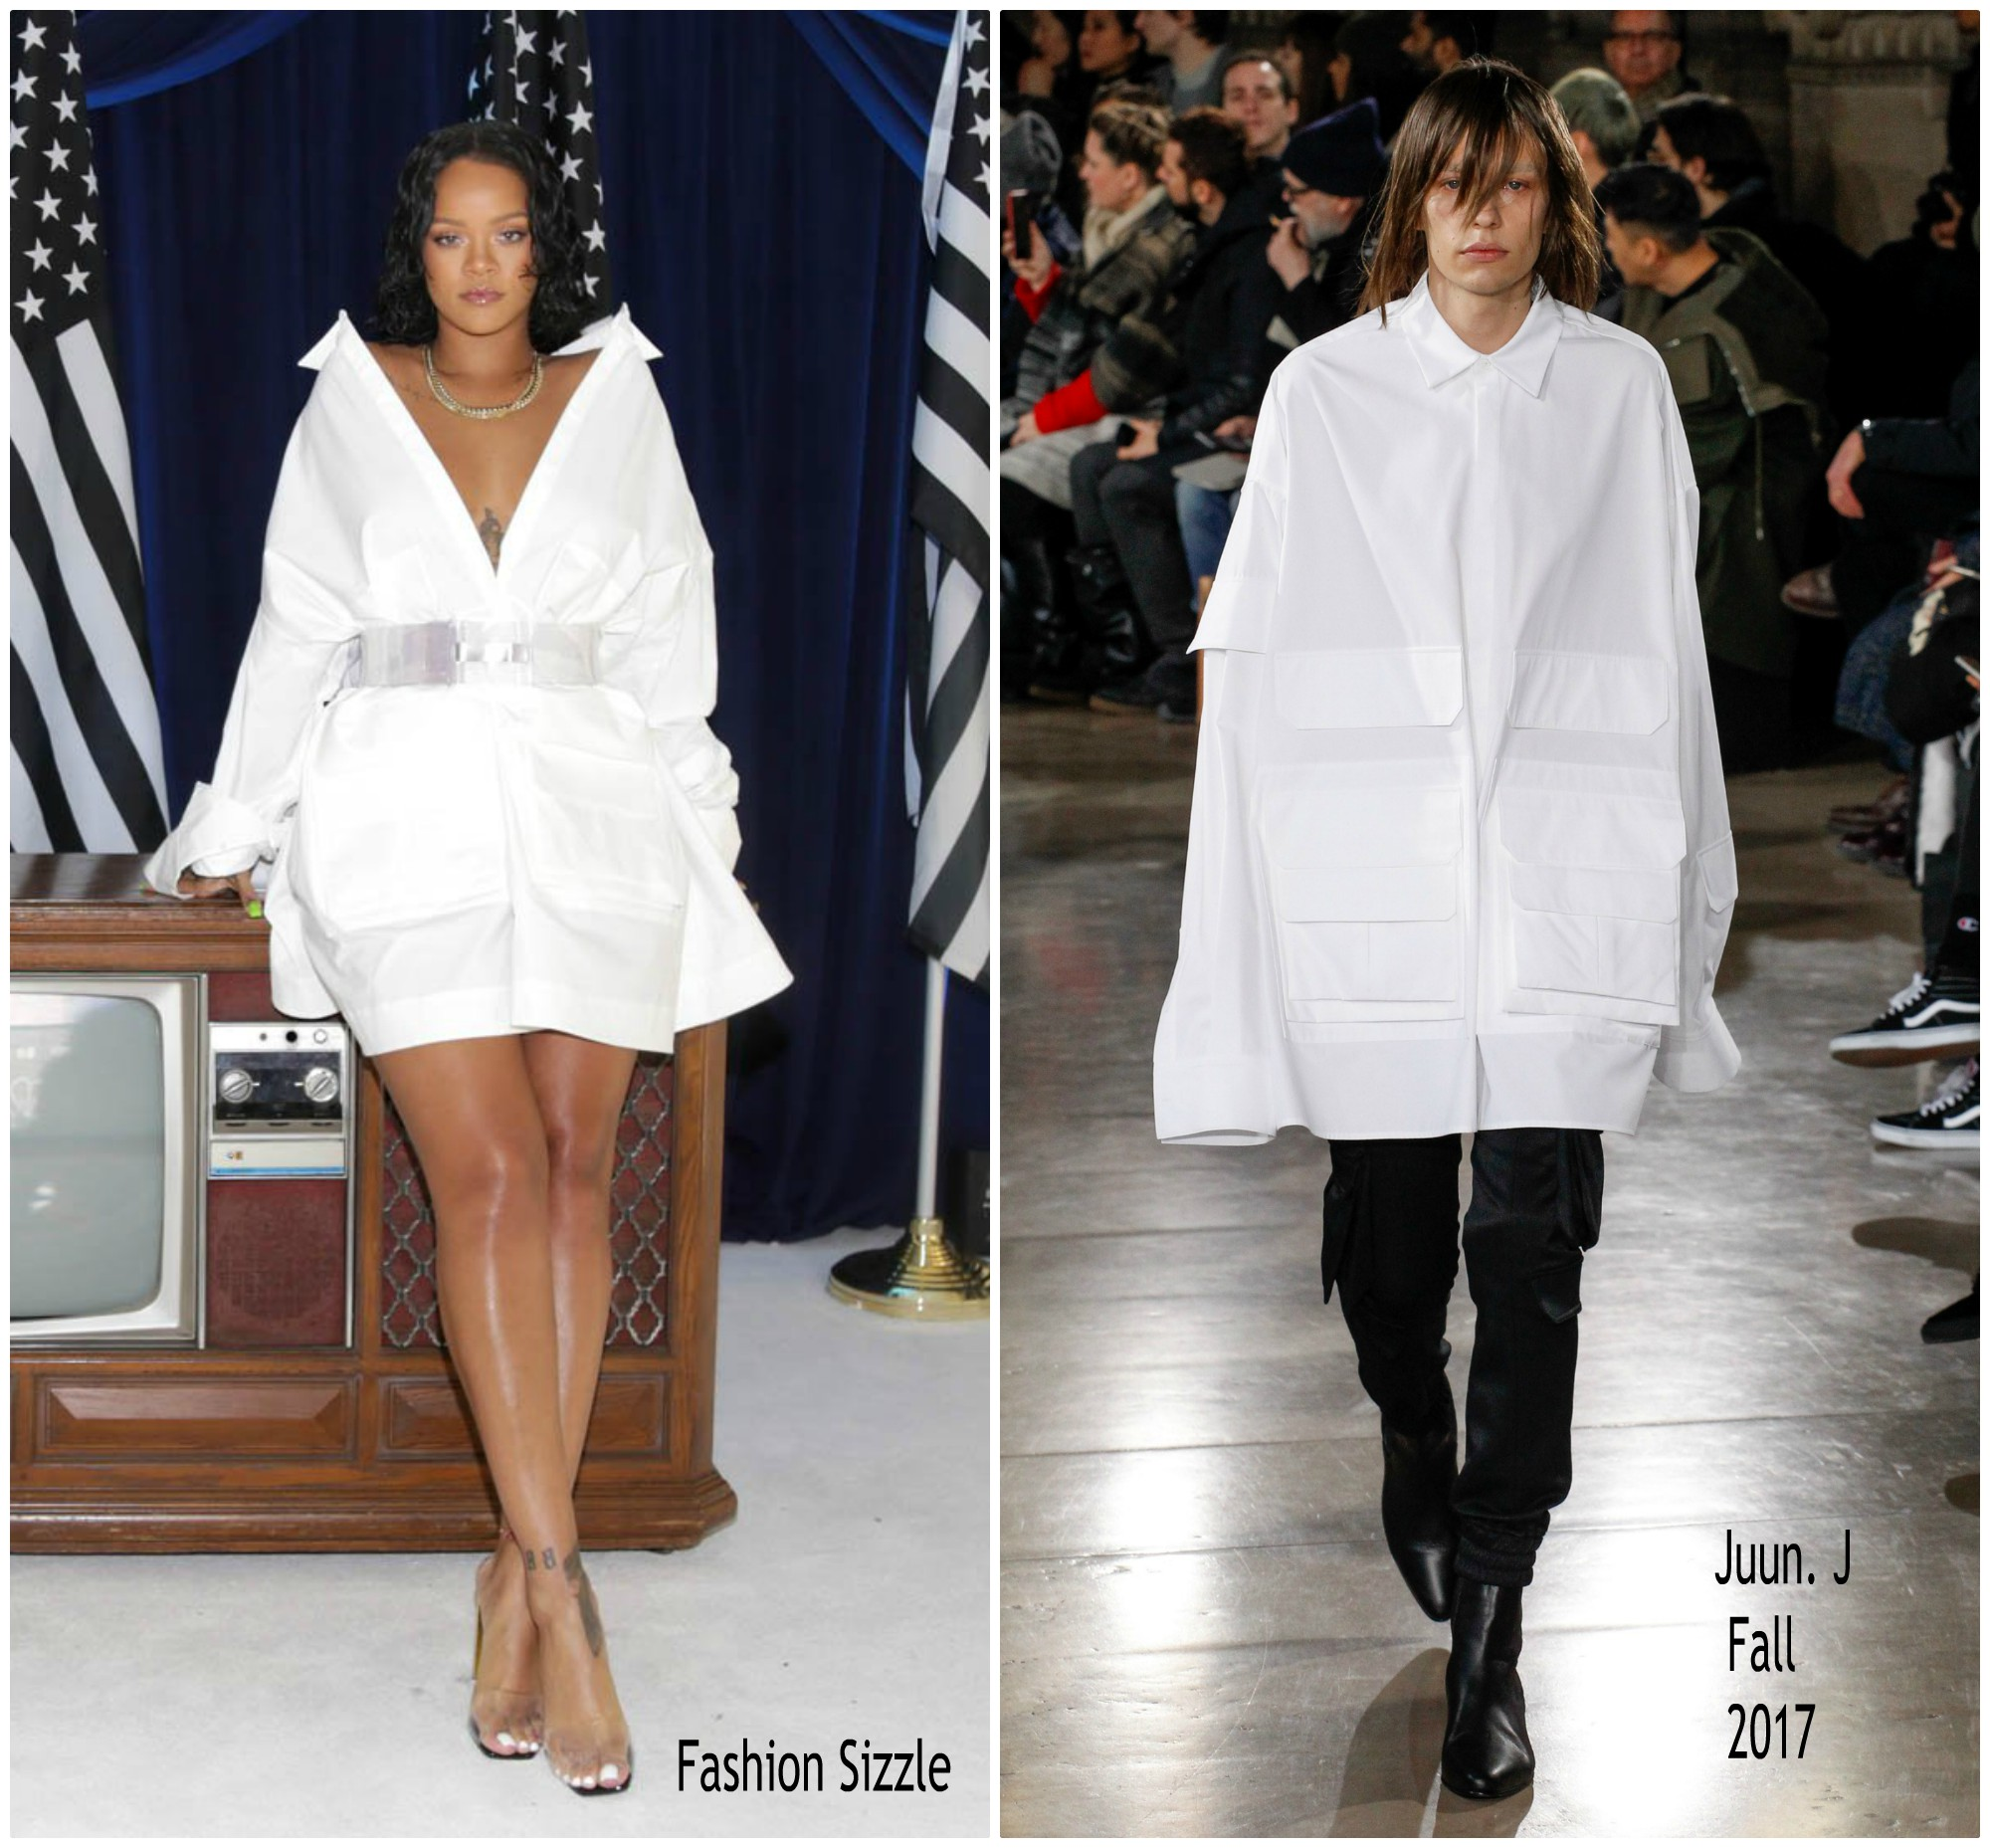 rihanna-in-juun-j-madeworn-x-roc96-pop-up-event